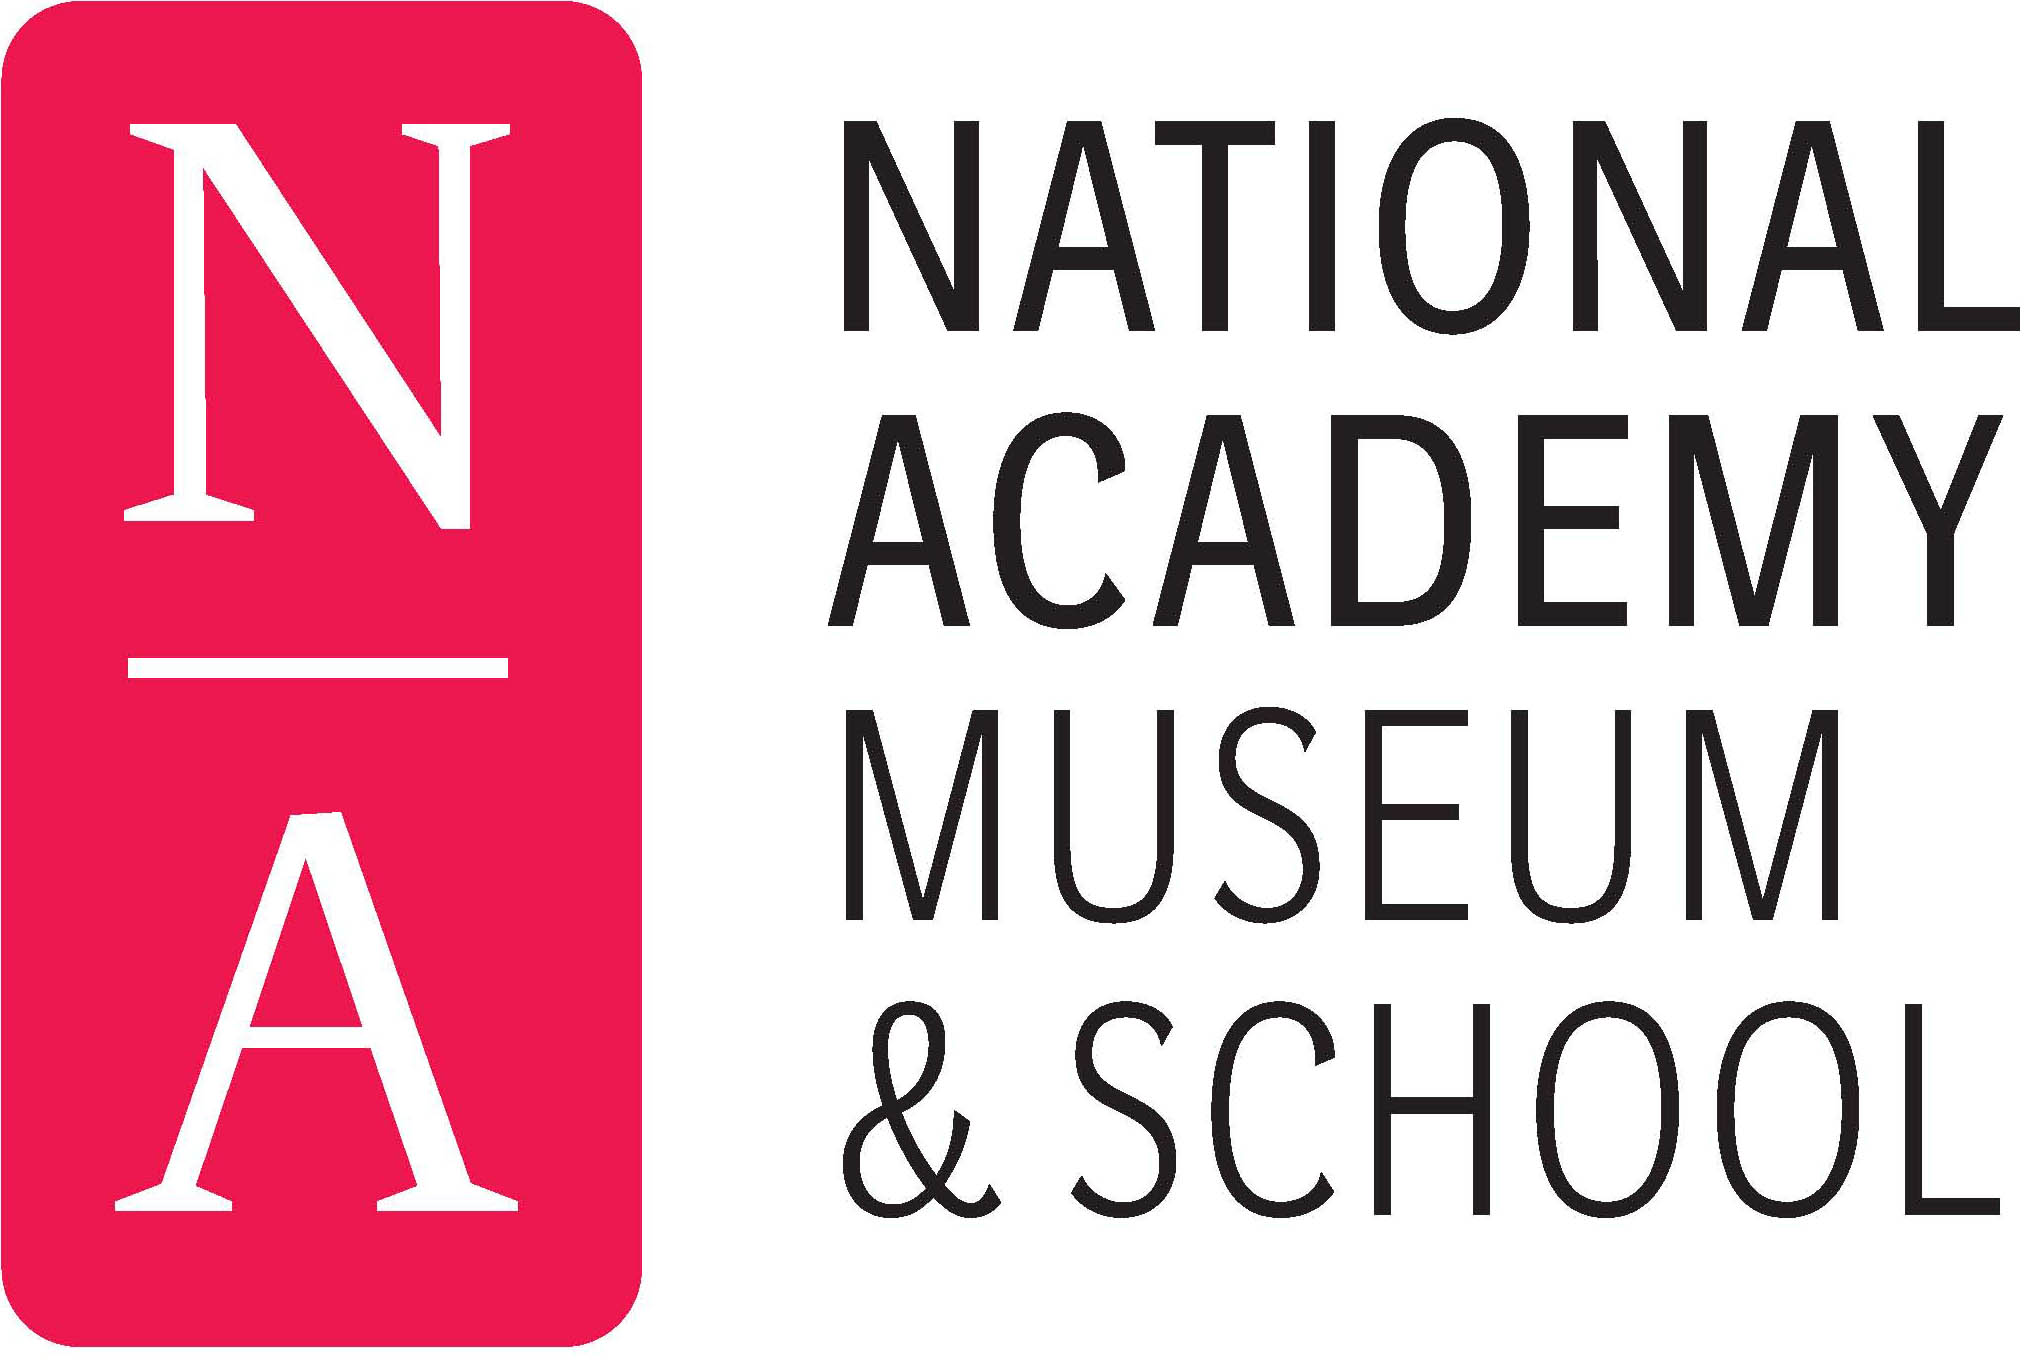 National Academy Museum & School